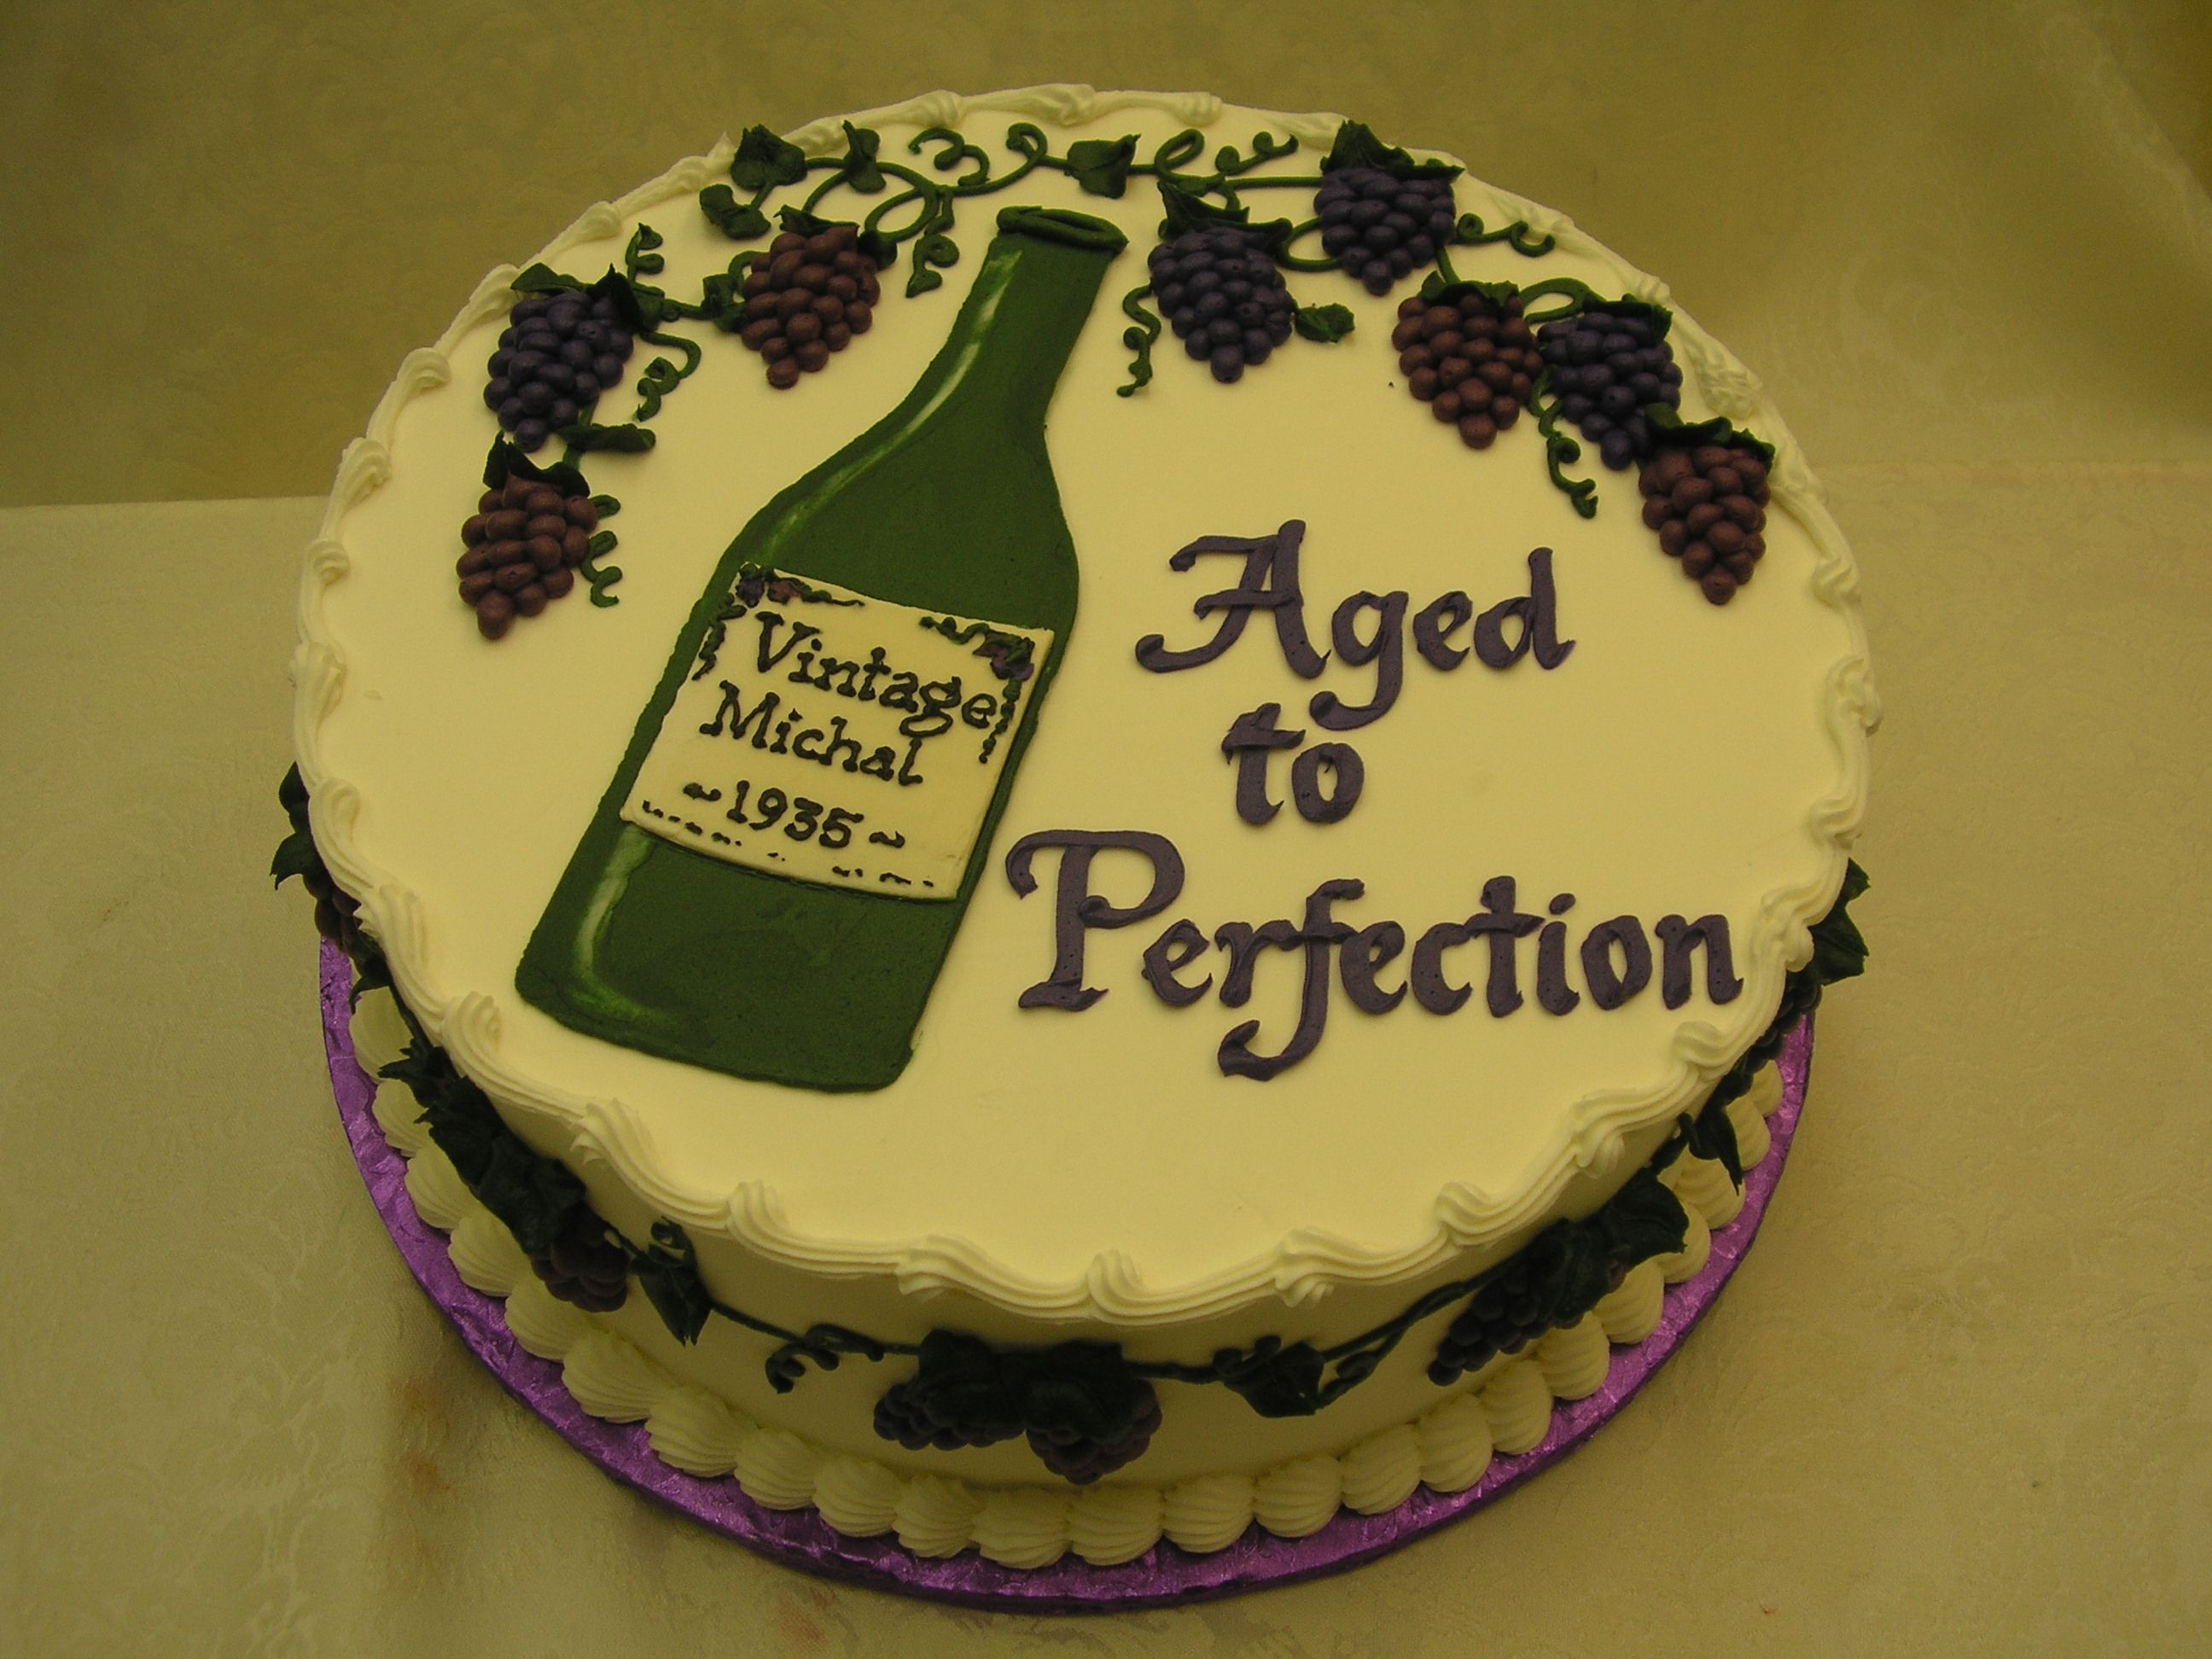 Aged To Perfection Cake Decorating Ideas for Cakes Pinterest